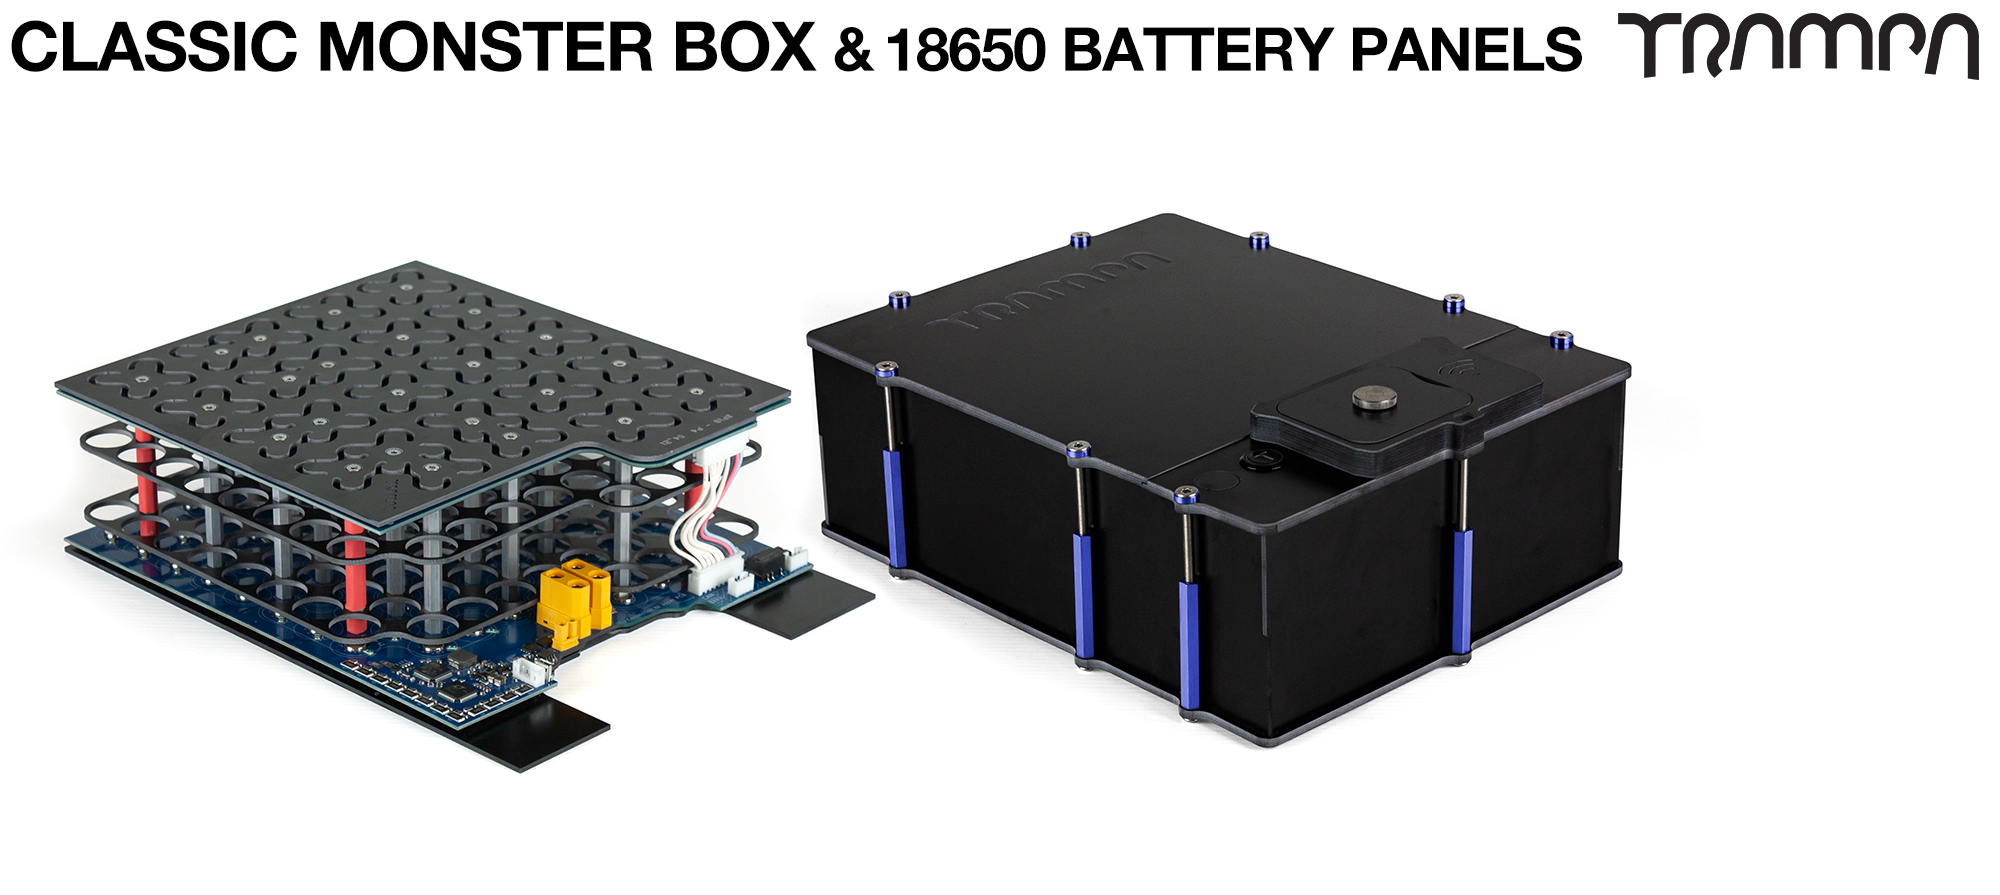 MONSTER Box MkIV supplied with a 18650 PCB based Battery Pack with Integrated Battery Management System (BMS) - NO VESC & NO Cells